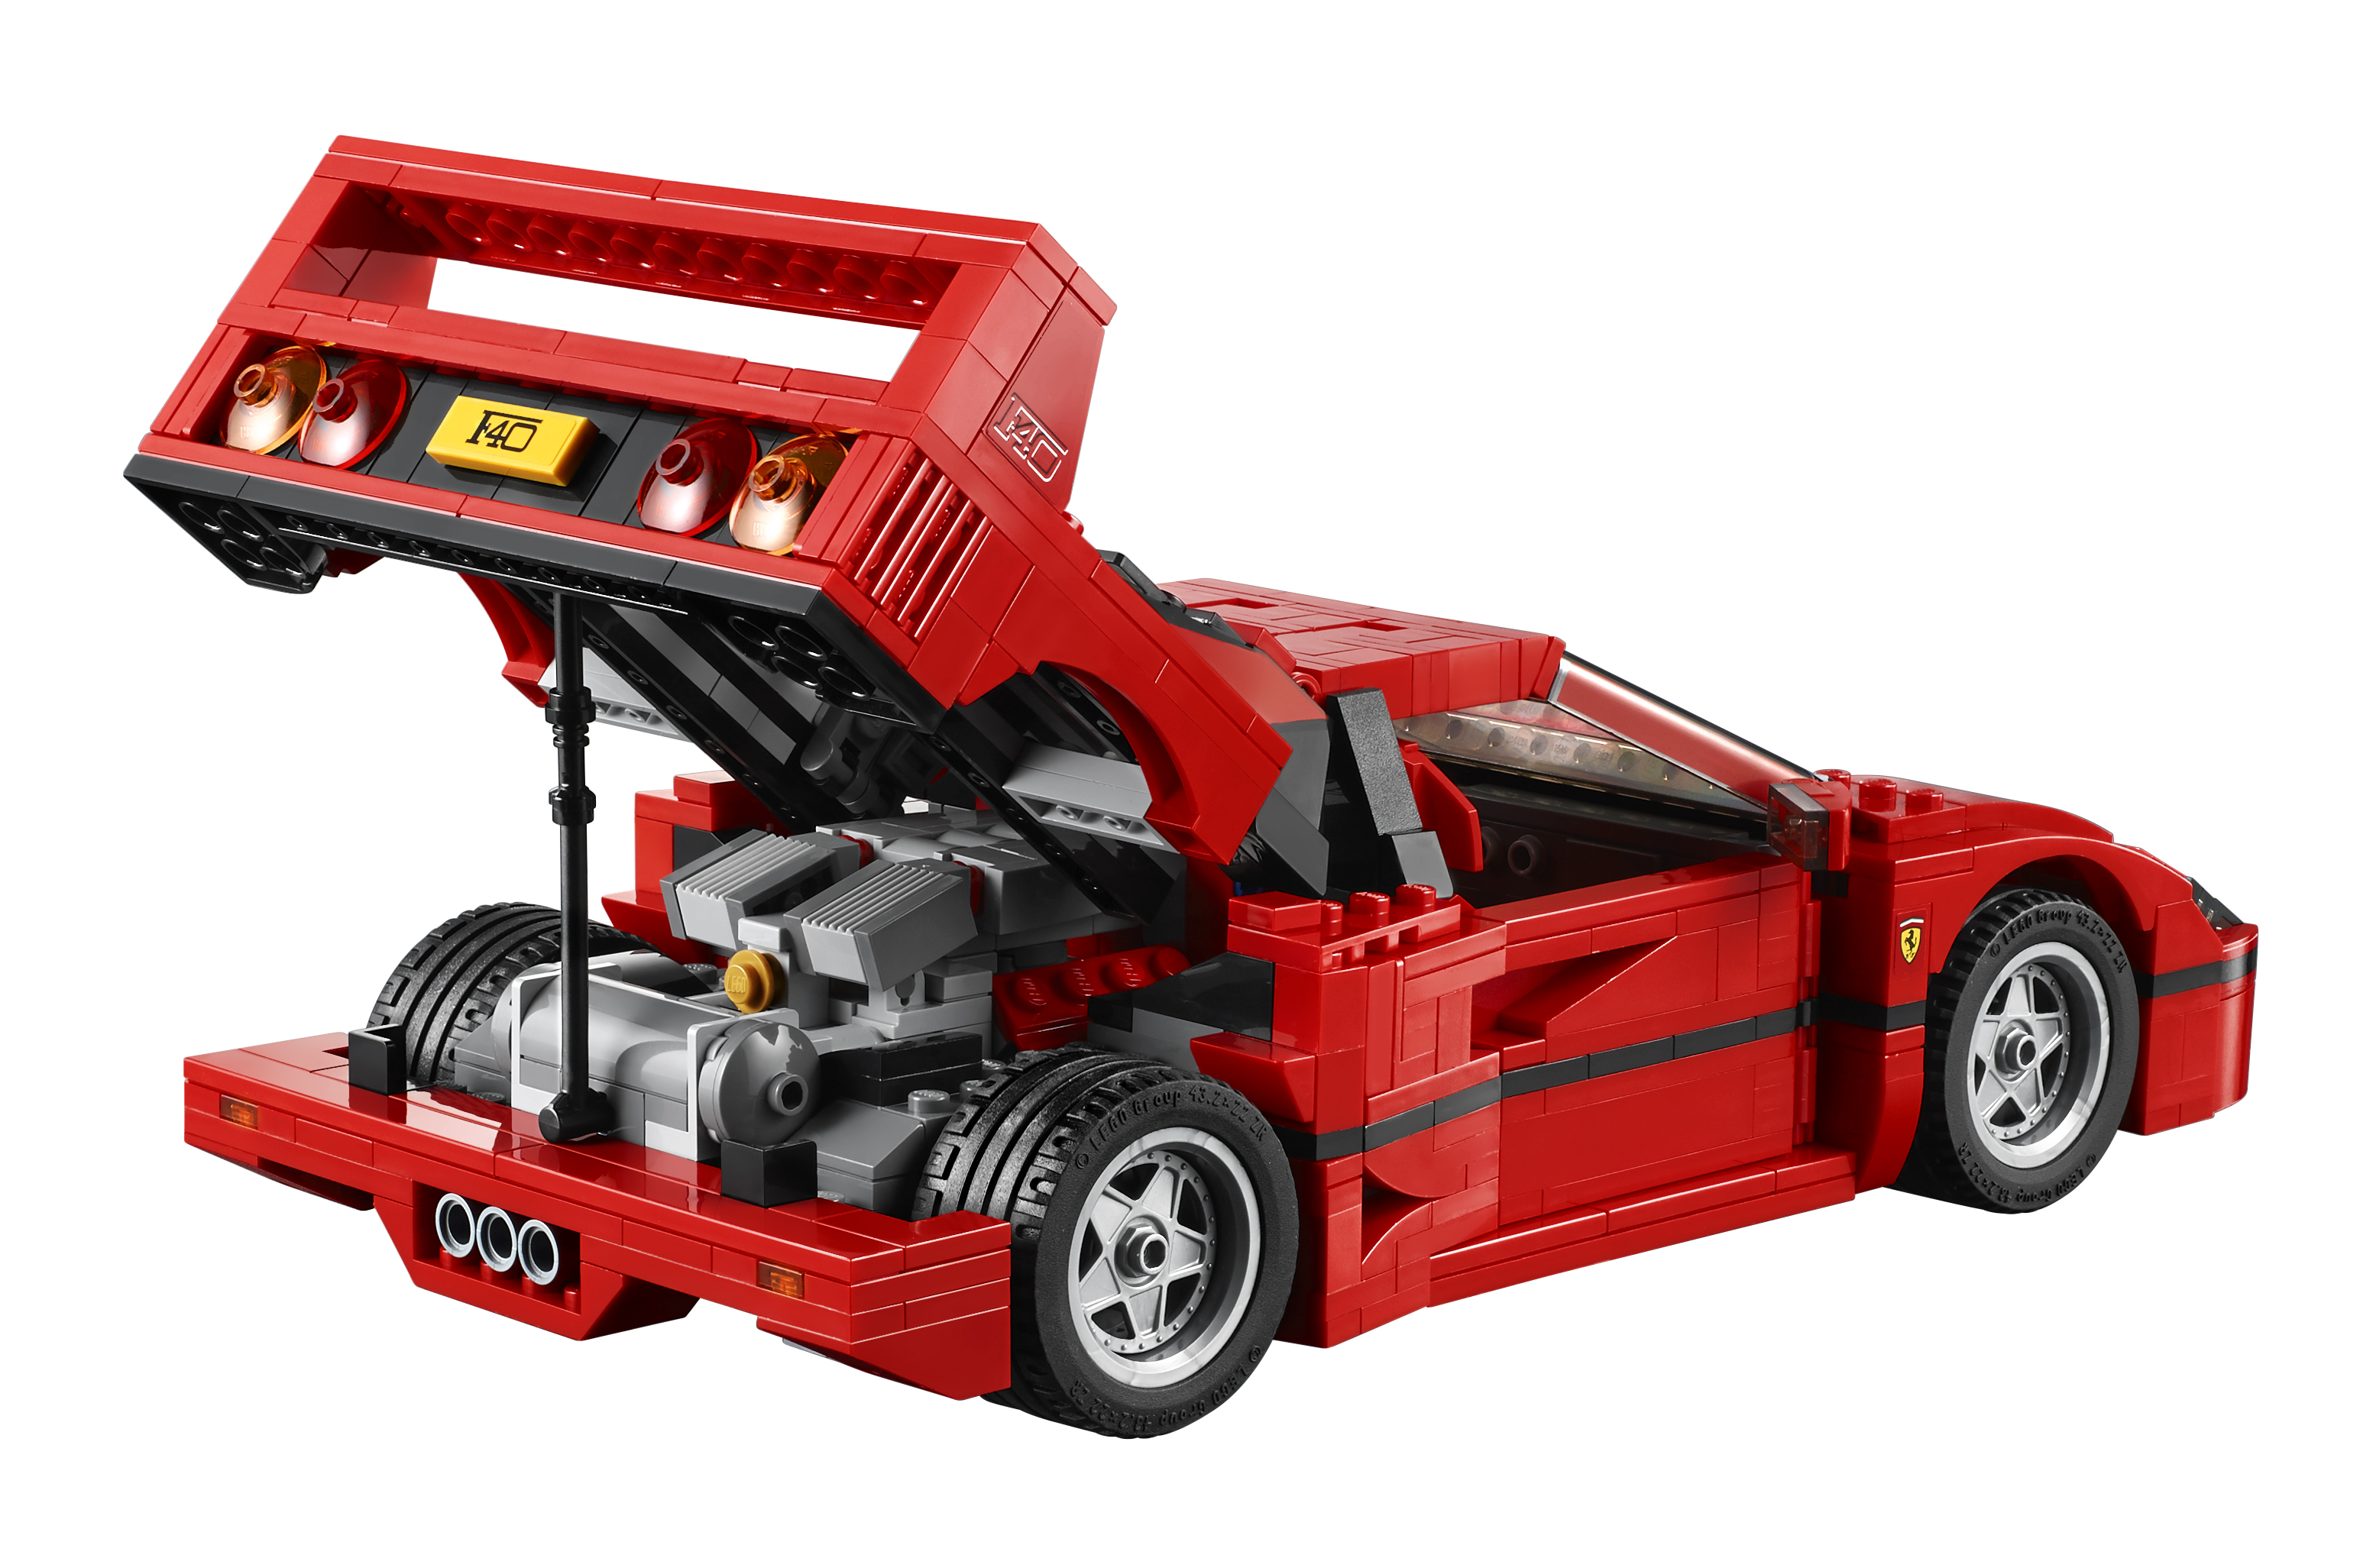 10248 creator expert ferrari f40 l 39 annonce officielle hellobricks blog lego. Black Bedroom Furniture Sets. Home Design Ideas